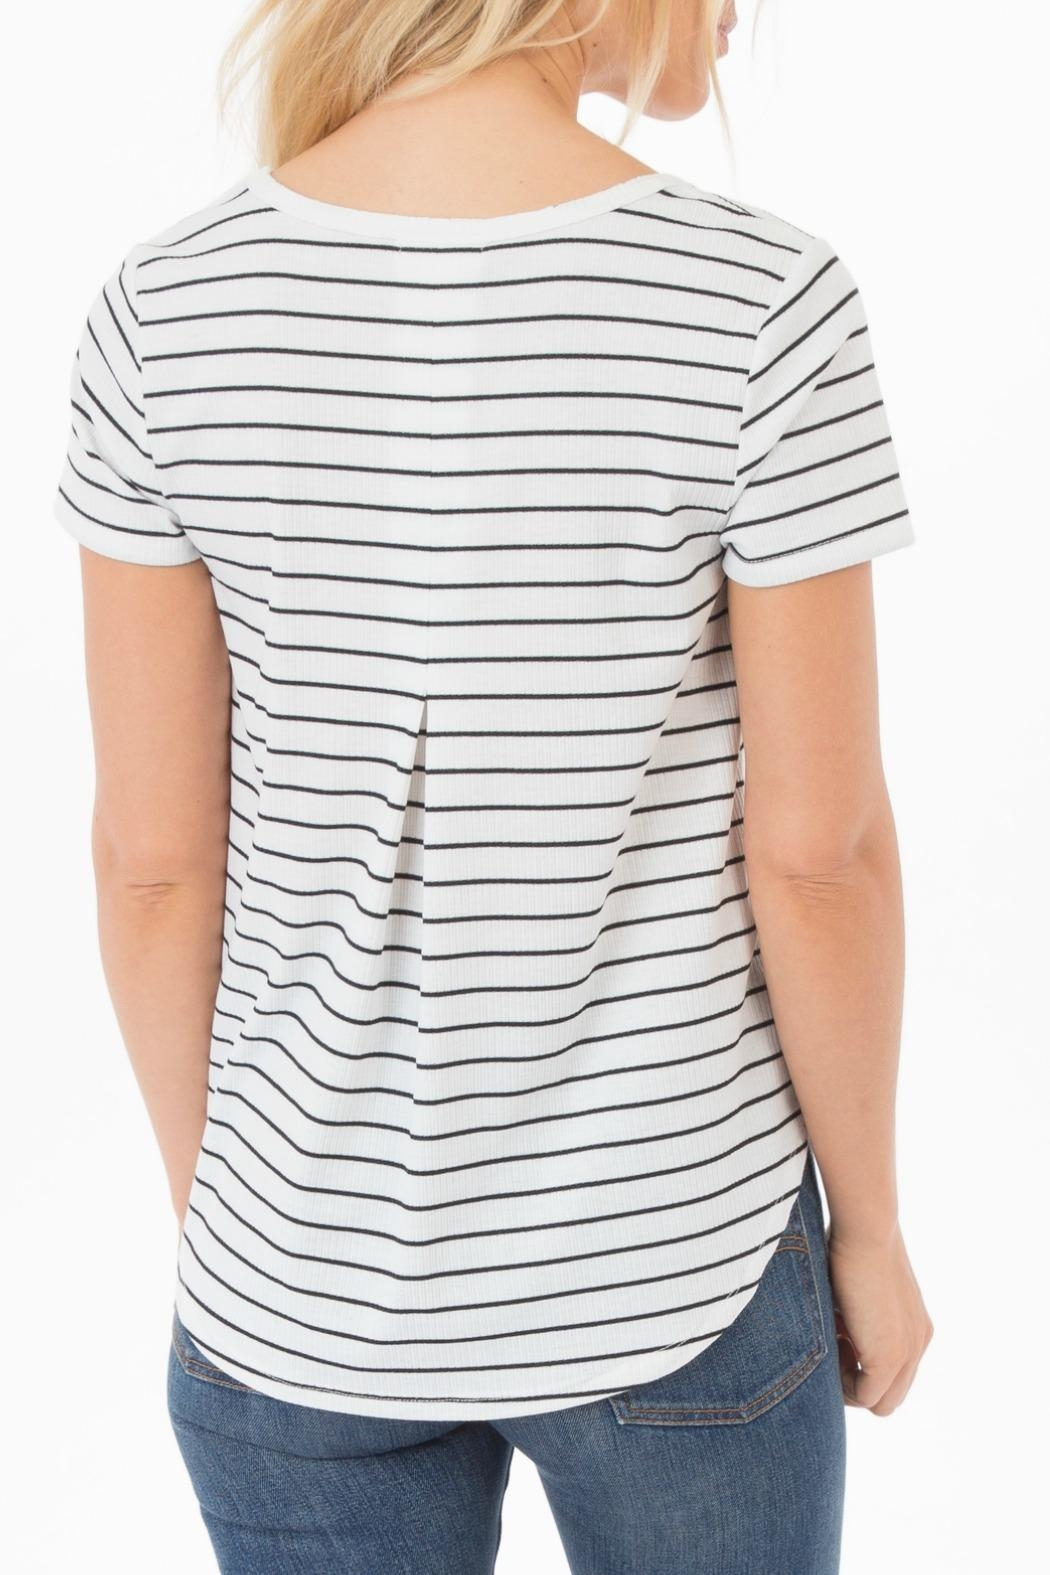 rag poets Ribbed Knit-Stripe Tee - Front Full Image